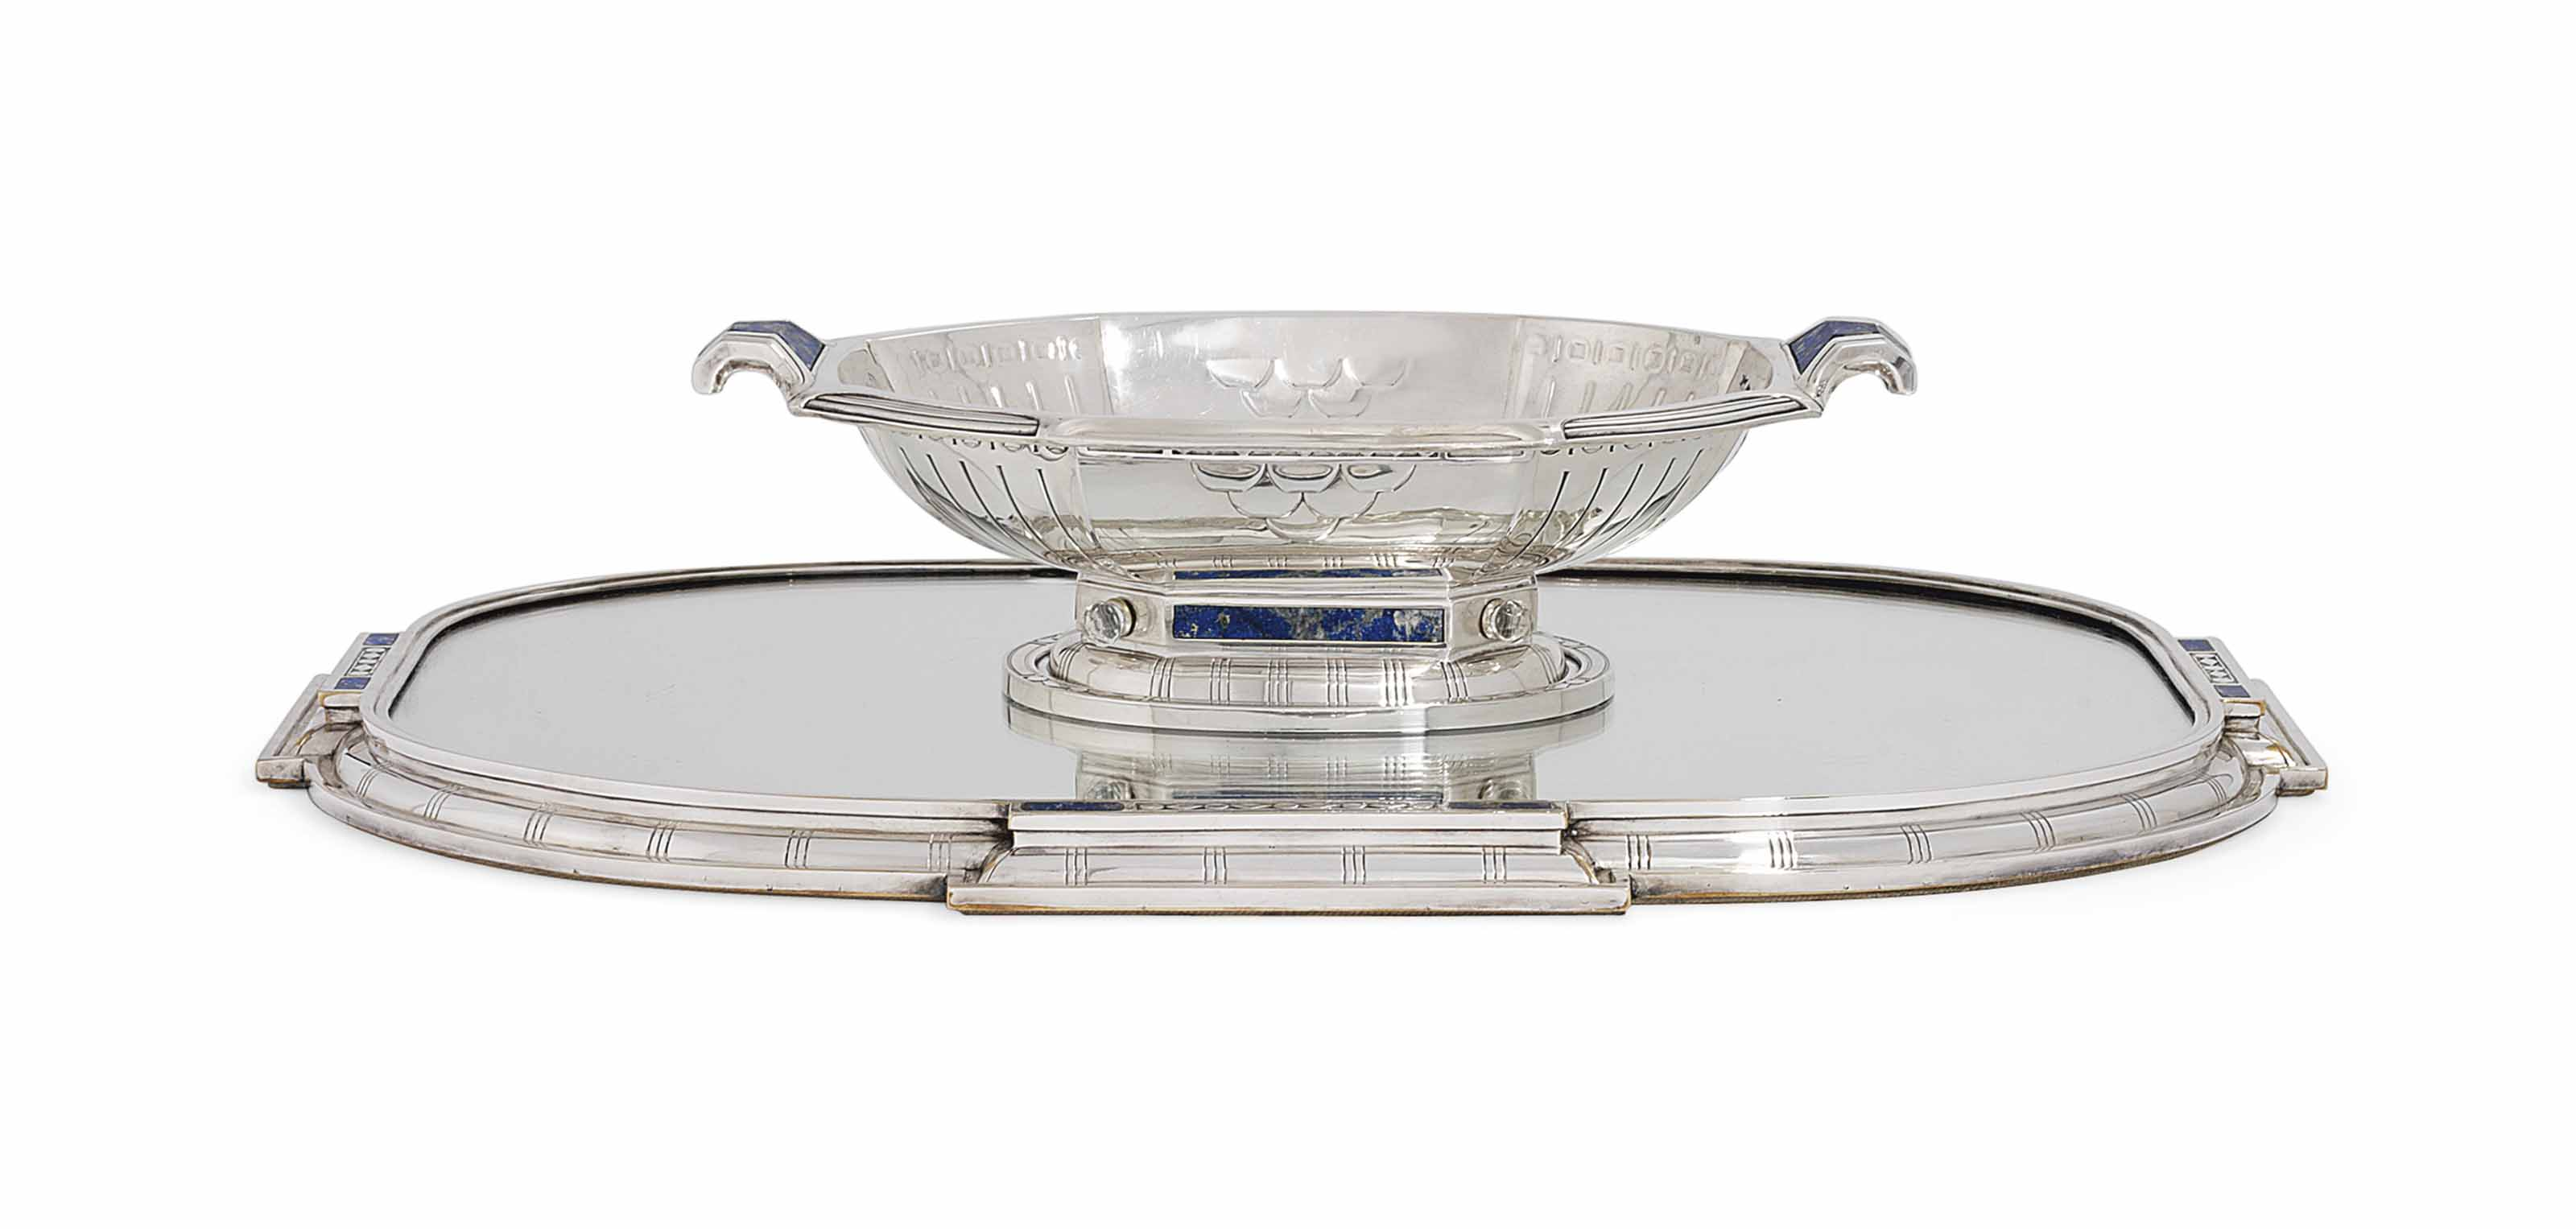 A FRENCH SILVER AND LAPIS LAZULI CENTREPIECE BOWL WITH A SILVER-PLATED AND LAPIS LAZULI MIRROR PLATEAU